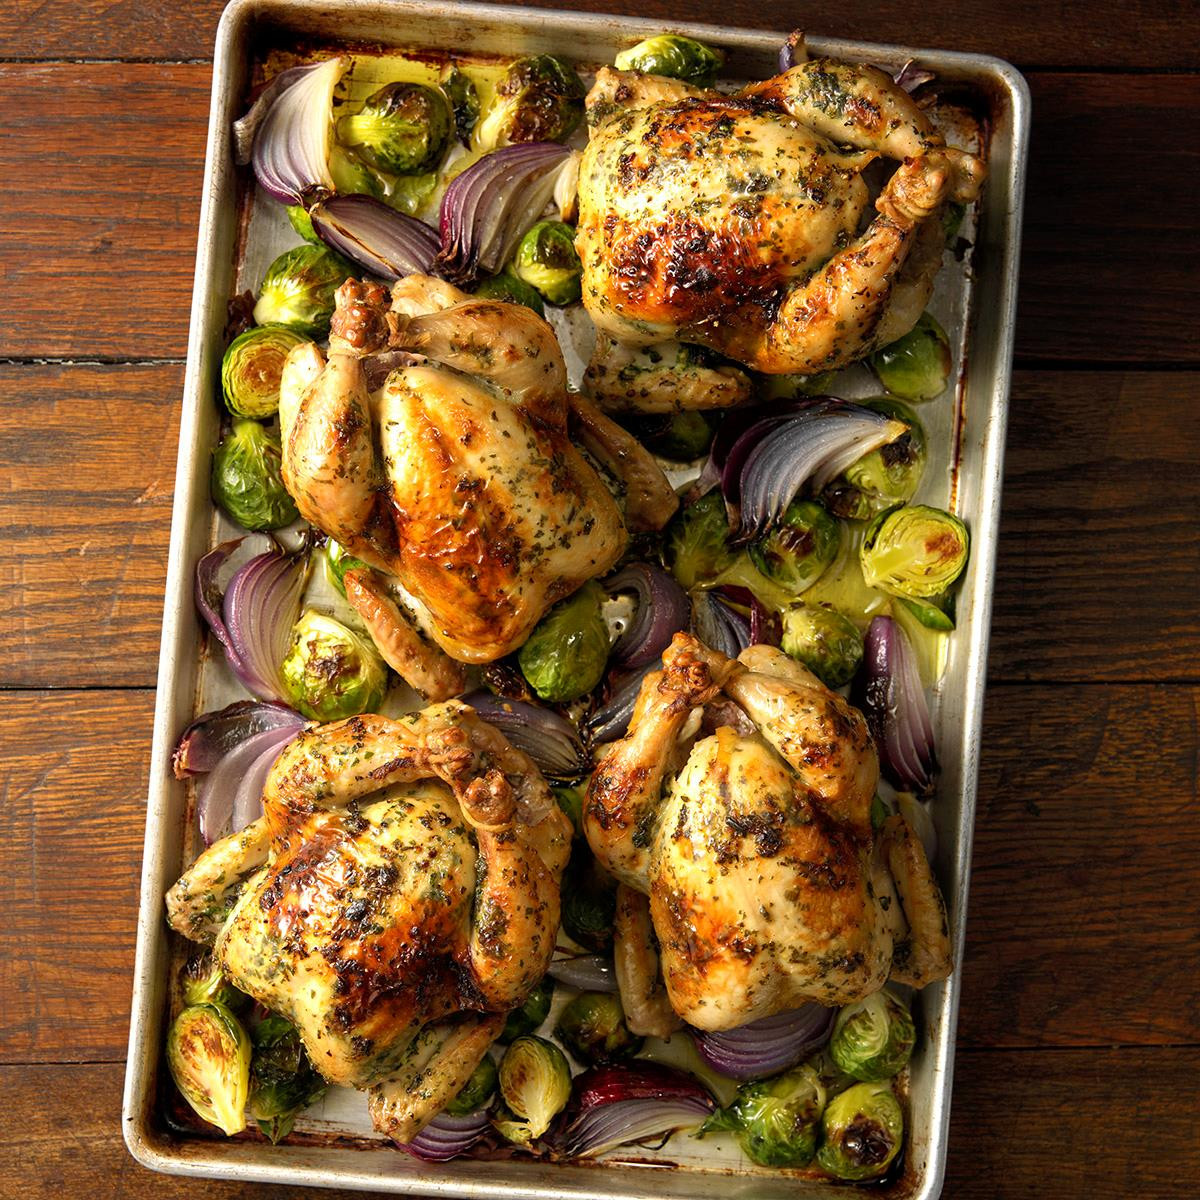 Recipes For Cornish Game Hens  Herb Brined Cornish Game Hens Recipe